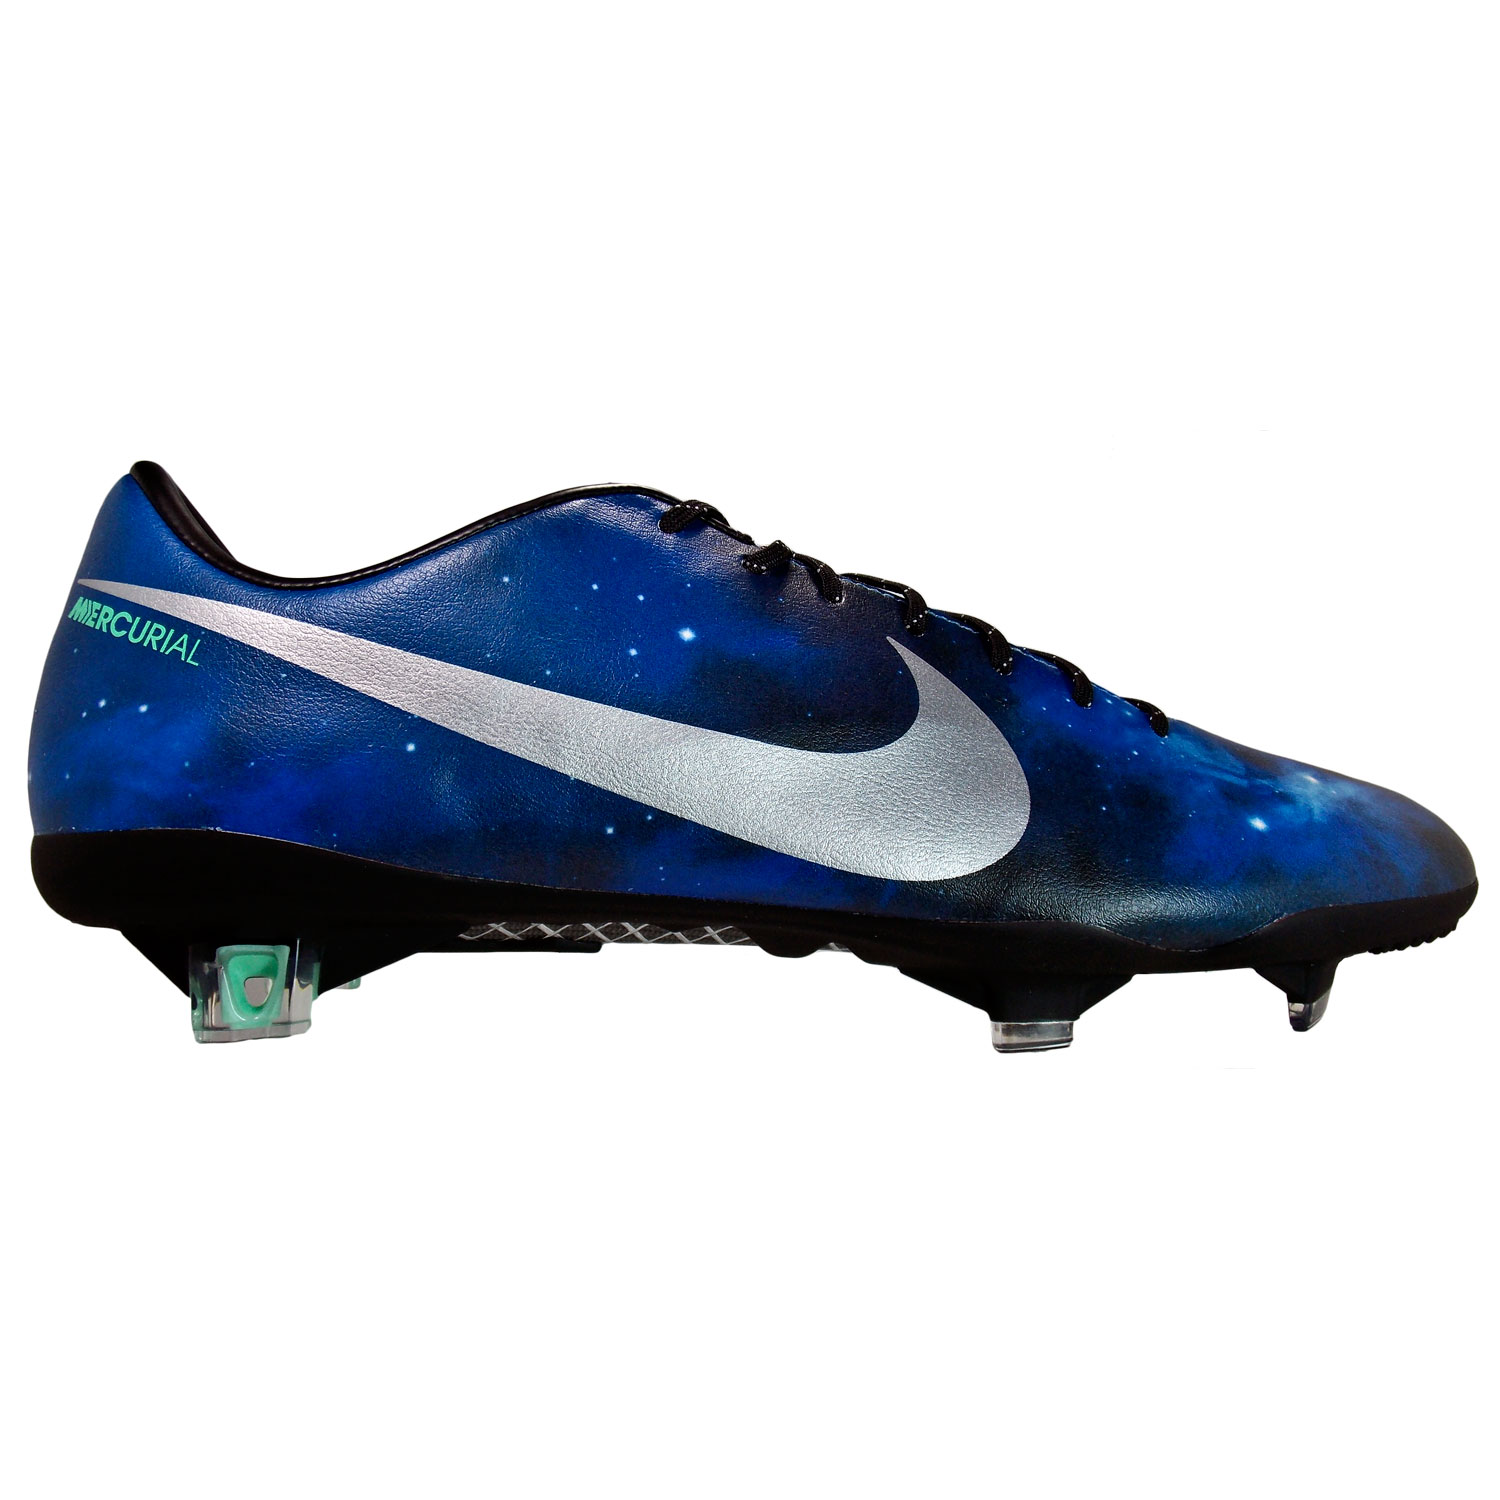 cr7 galaxy cleats video search engine at searchcom